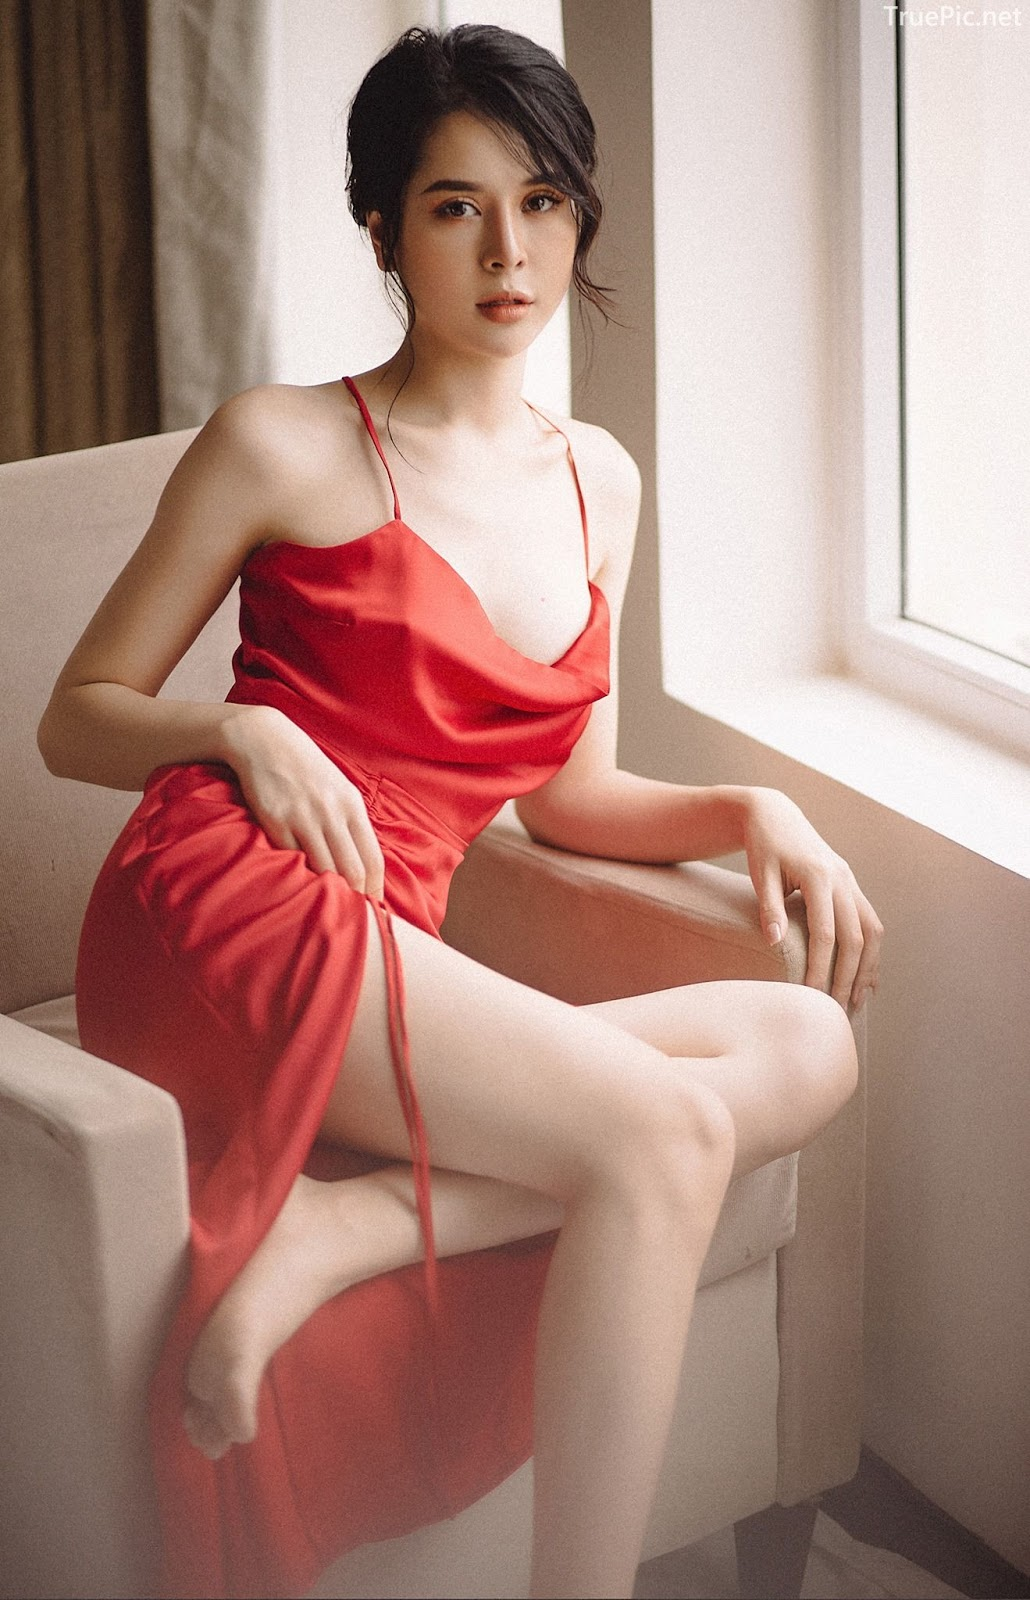 Vietnamese hot model - The beauty of Women with Red Camisole Dress - Photo by Linh Phan - Picture 3